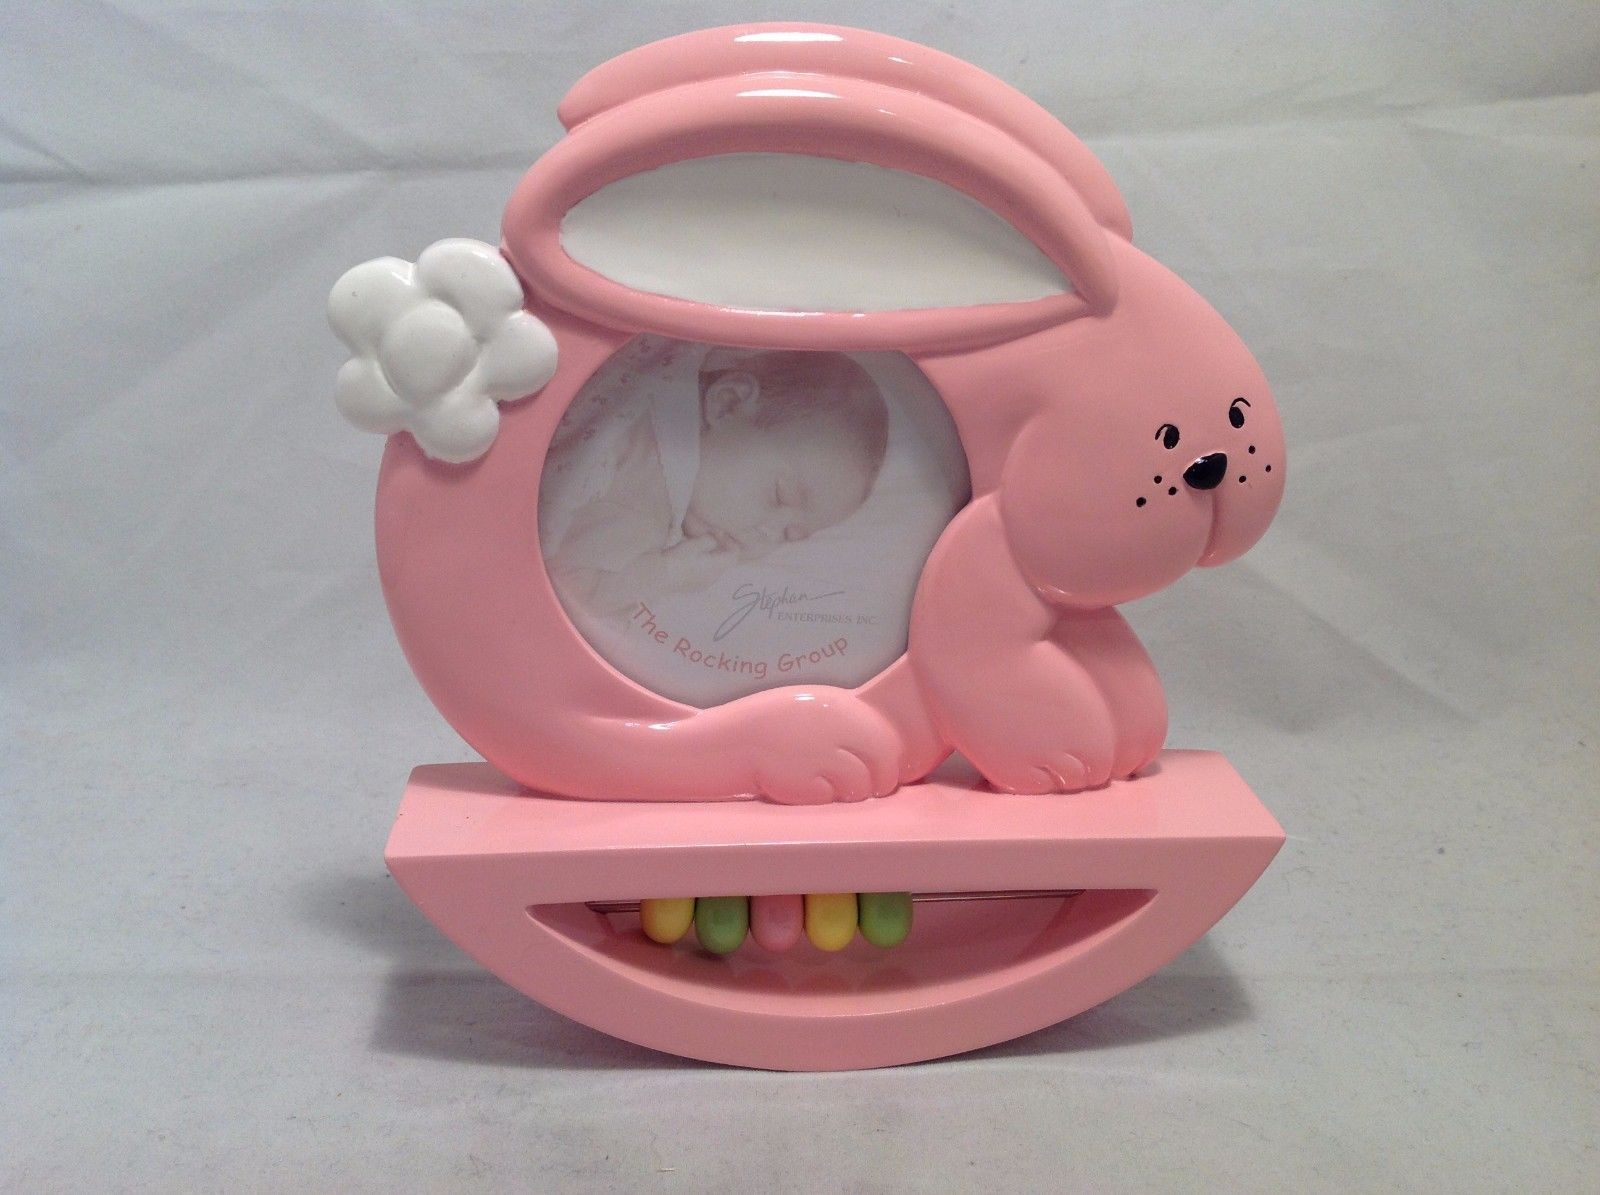 Preowned Never Used The Rocking Group Pink Bunny Baby Photo Frame